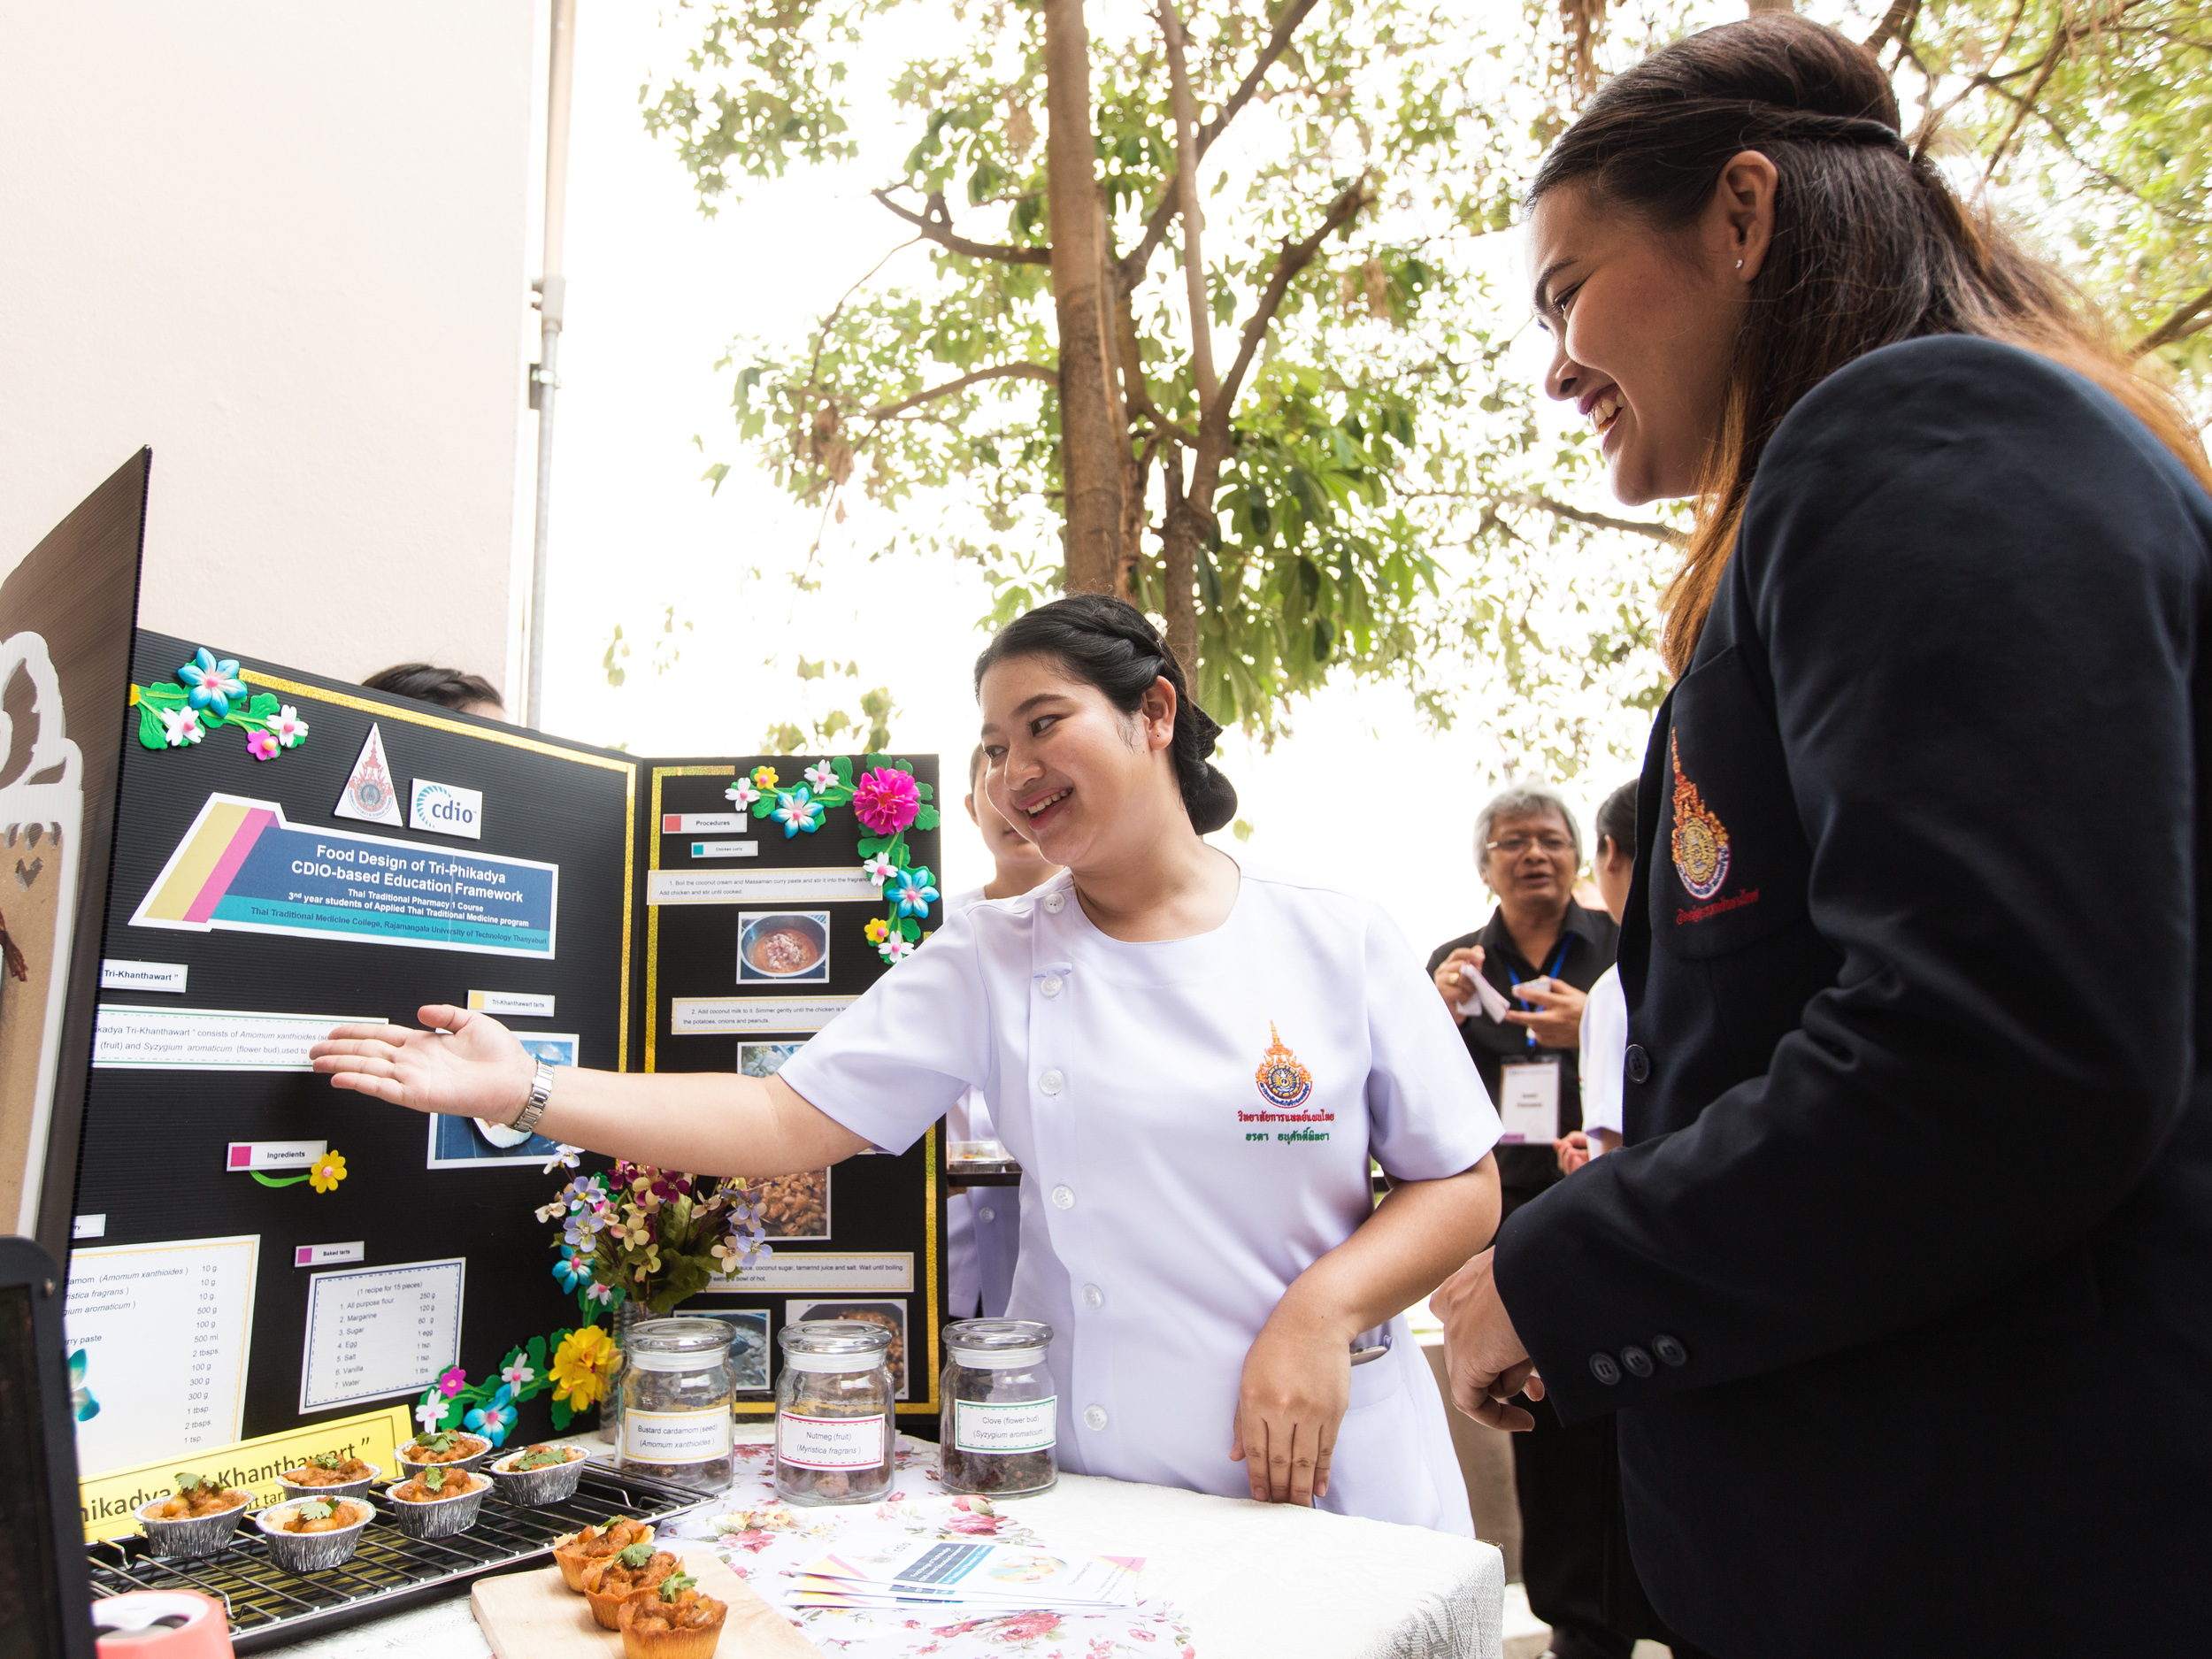 Thai Traditional Medicine College student Orada Anusakpitaya (left), 20, presents her project, where she used traditional herbs to make tarts. Orada not only conceived the idea of healthier pastries, she also convinced her classmates of it through presentations, which trained her communication skills.